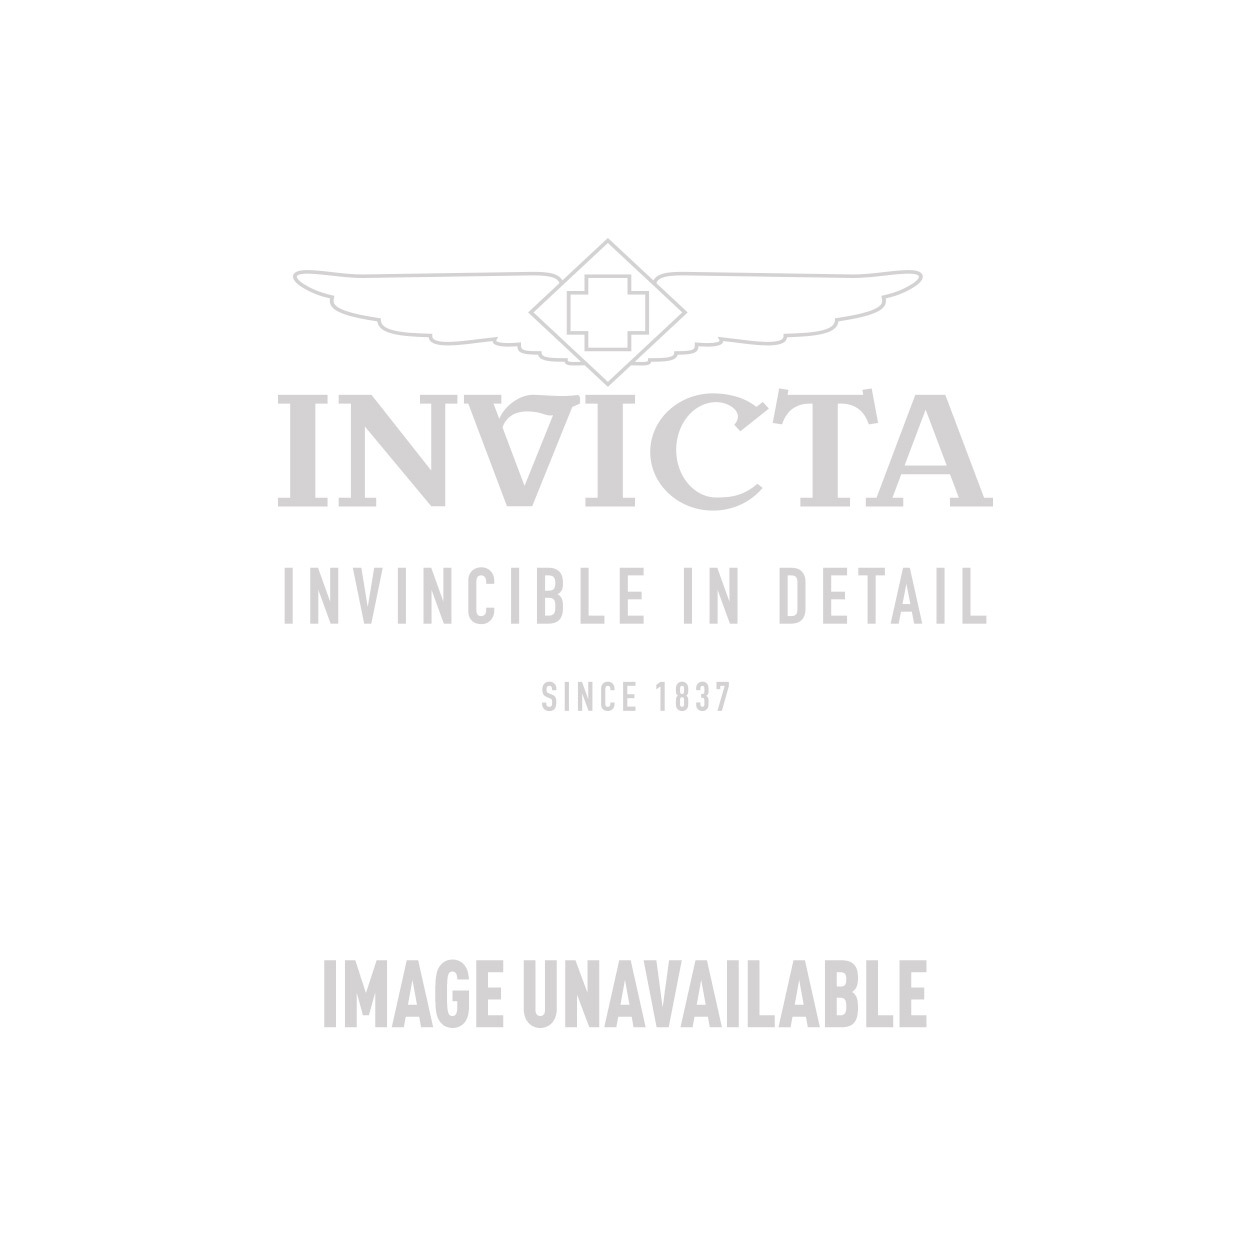 Invicta Aviator Quartz Watch - Gold, Black case with Gold tone Stainless Steel band - Model 17206